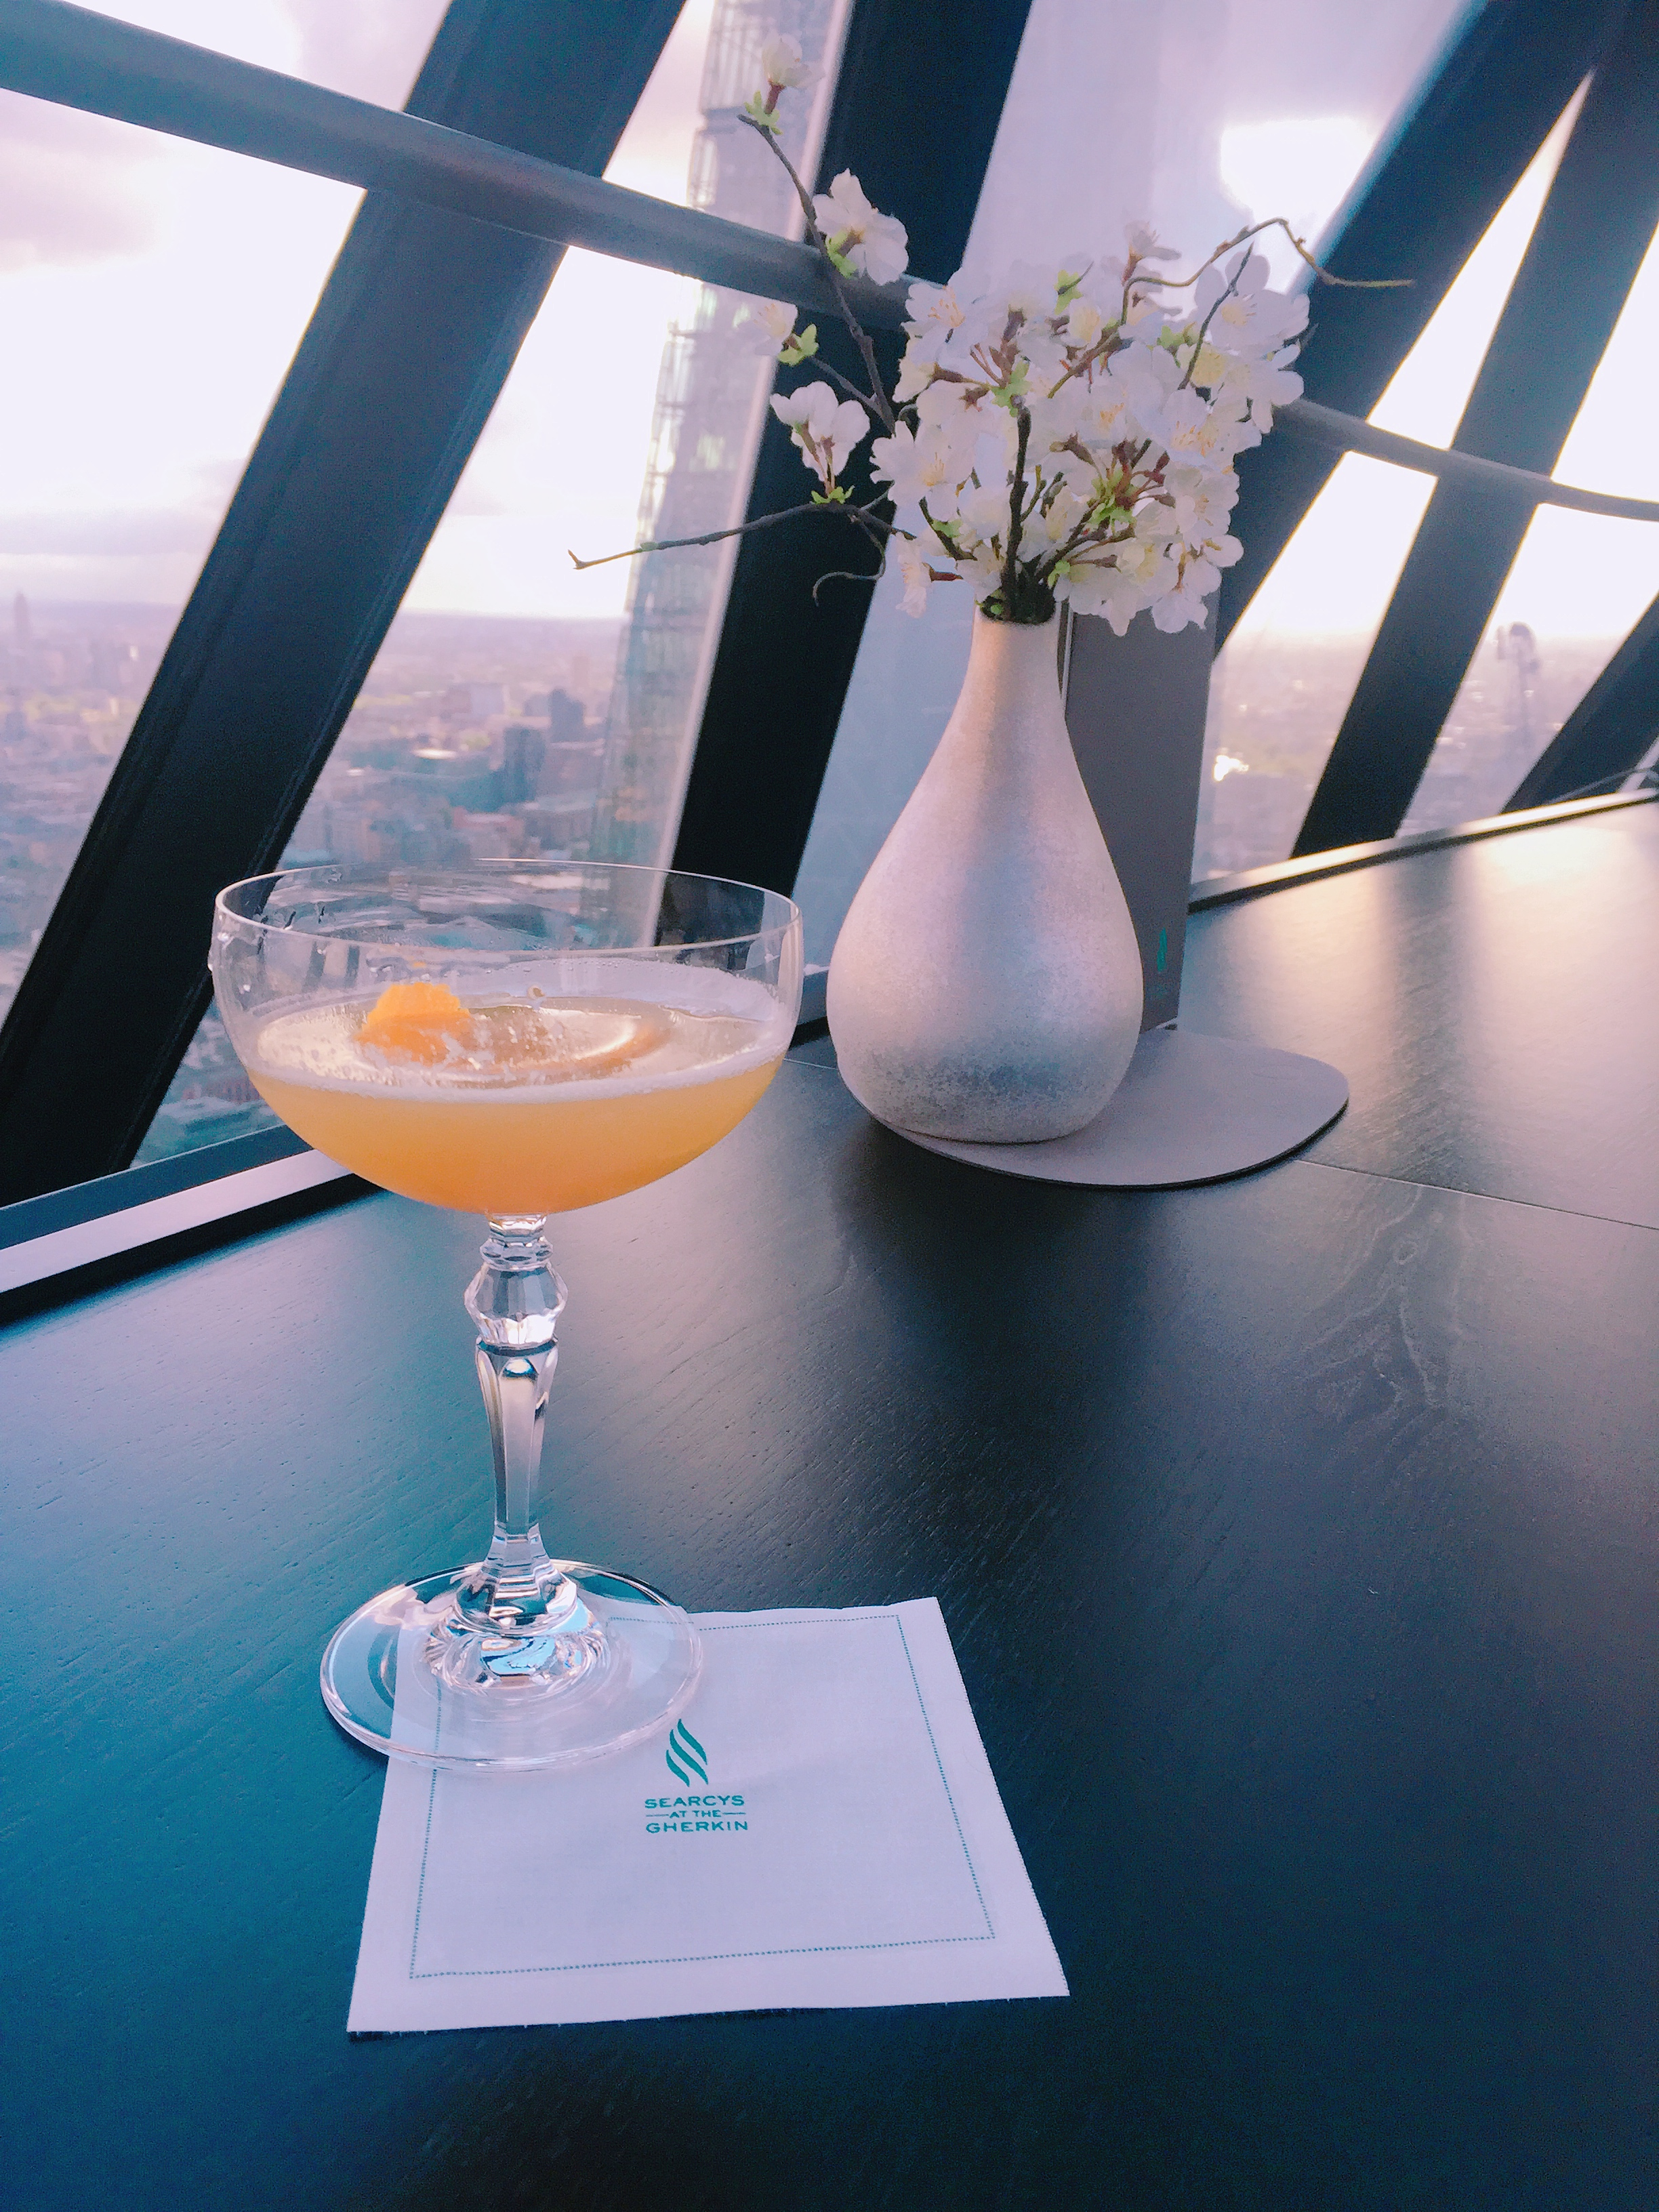 Searcys at the Gherkin cocktails